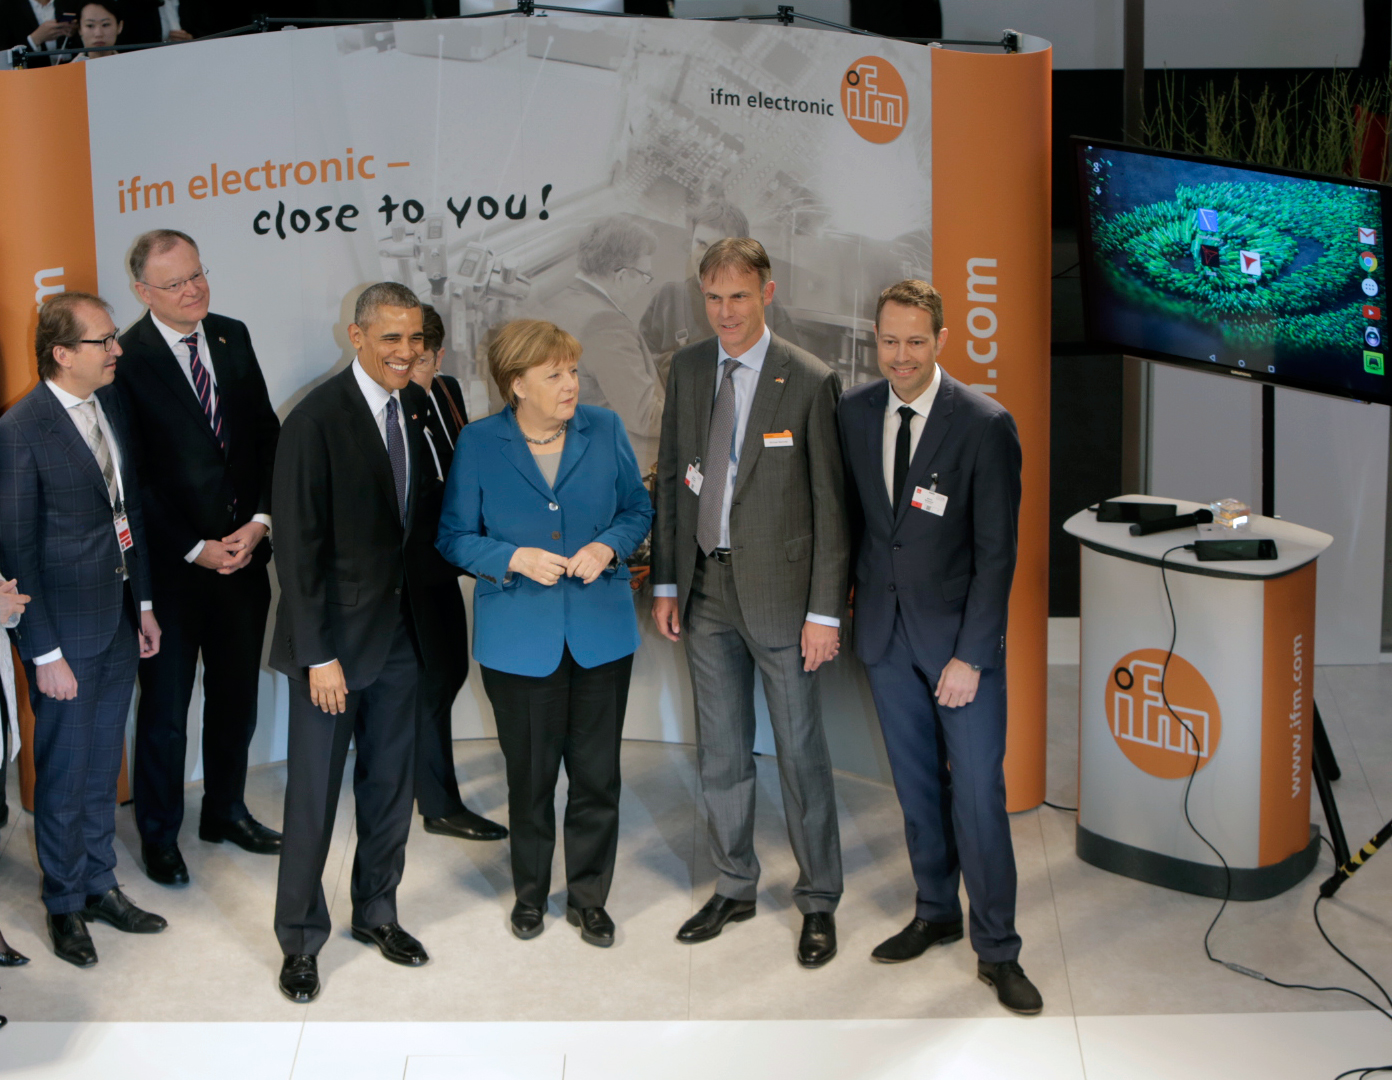 Merkel and Obama visit IFM exhibition stand